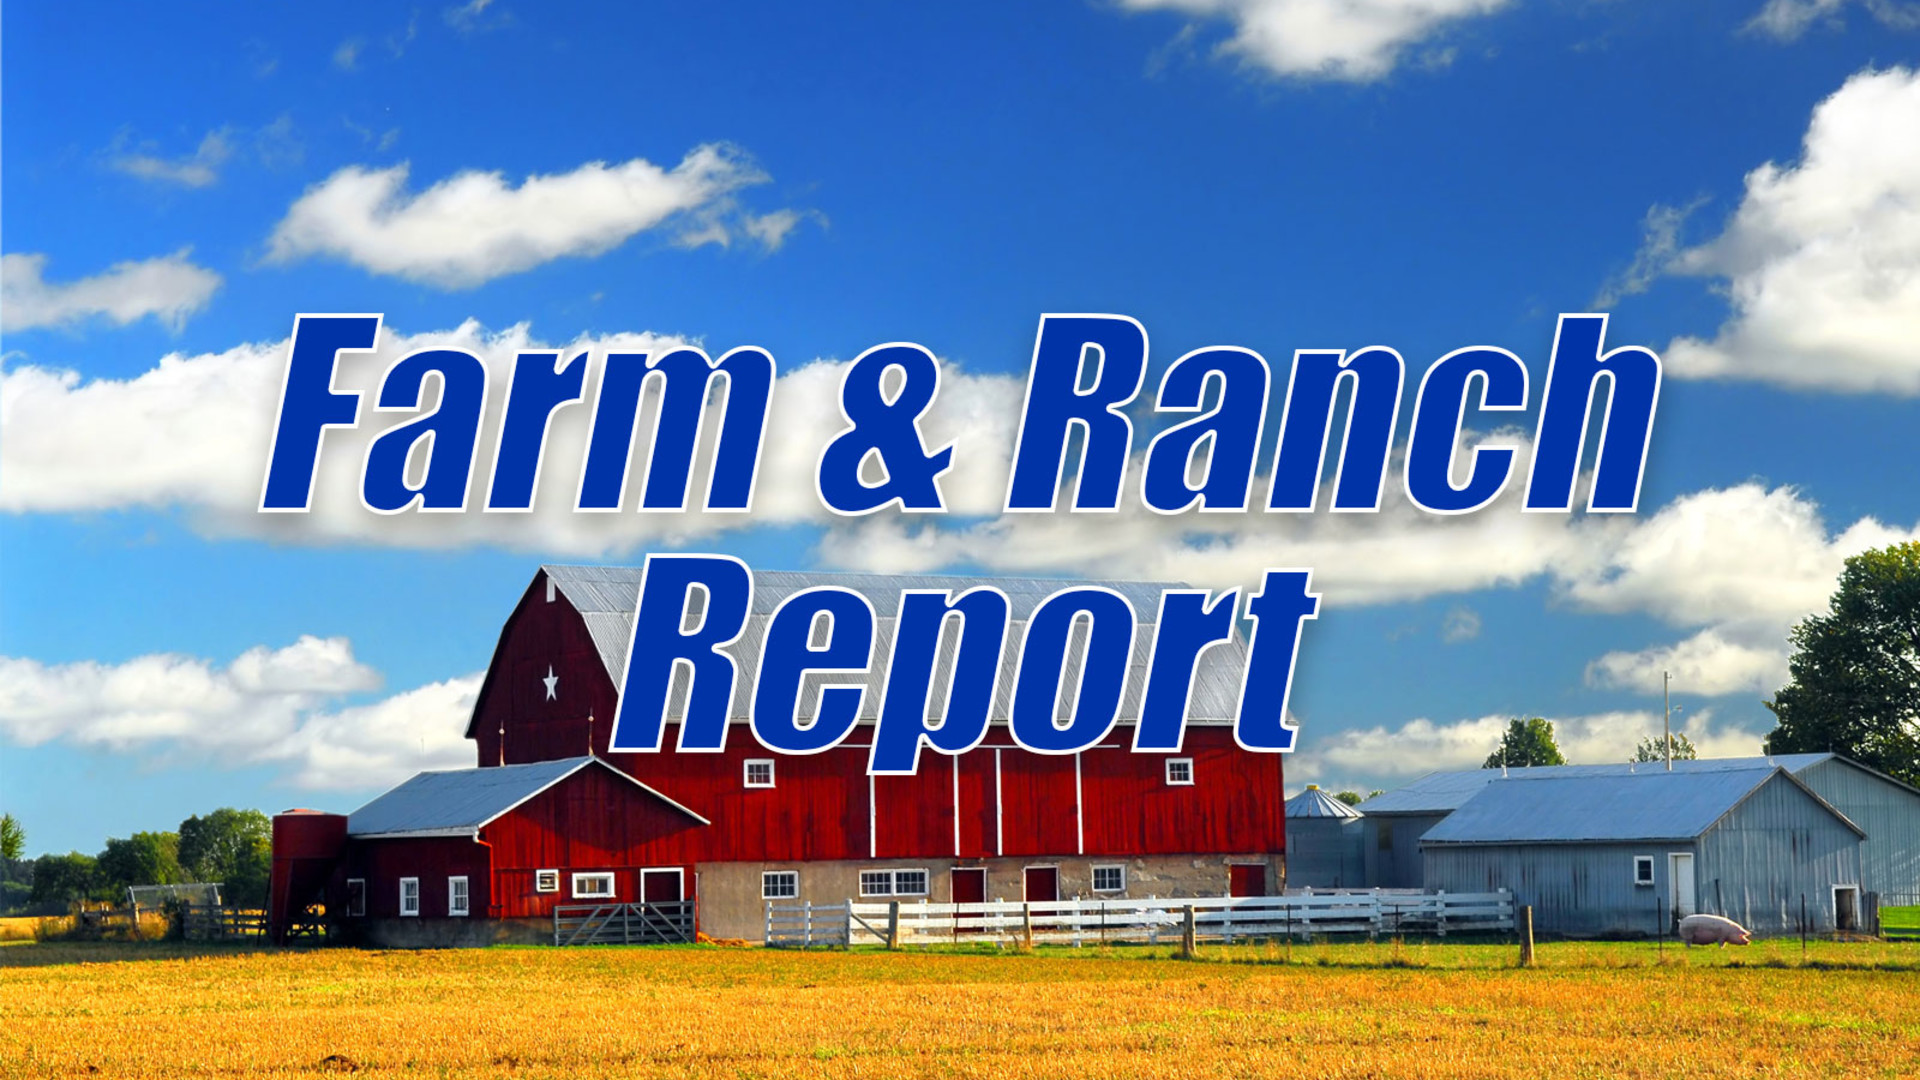 Bankers are also Interested in Hemp - AG INFORMATION NETWORK OF THE WEST - AGInfo Ag Information Network Of The West